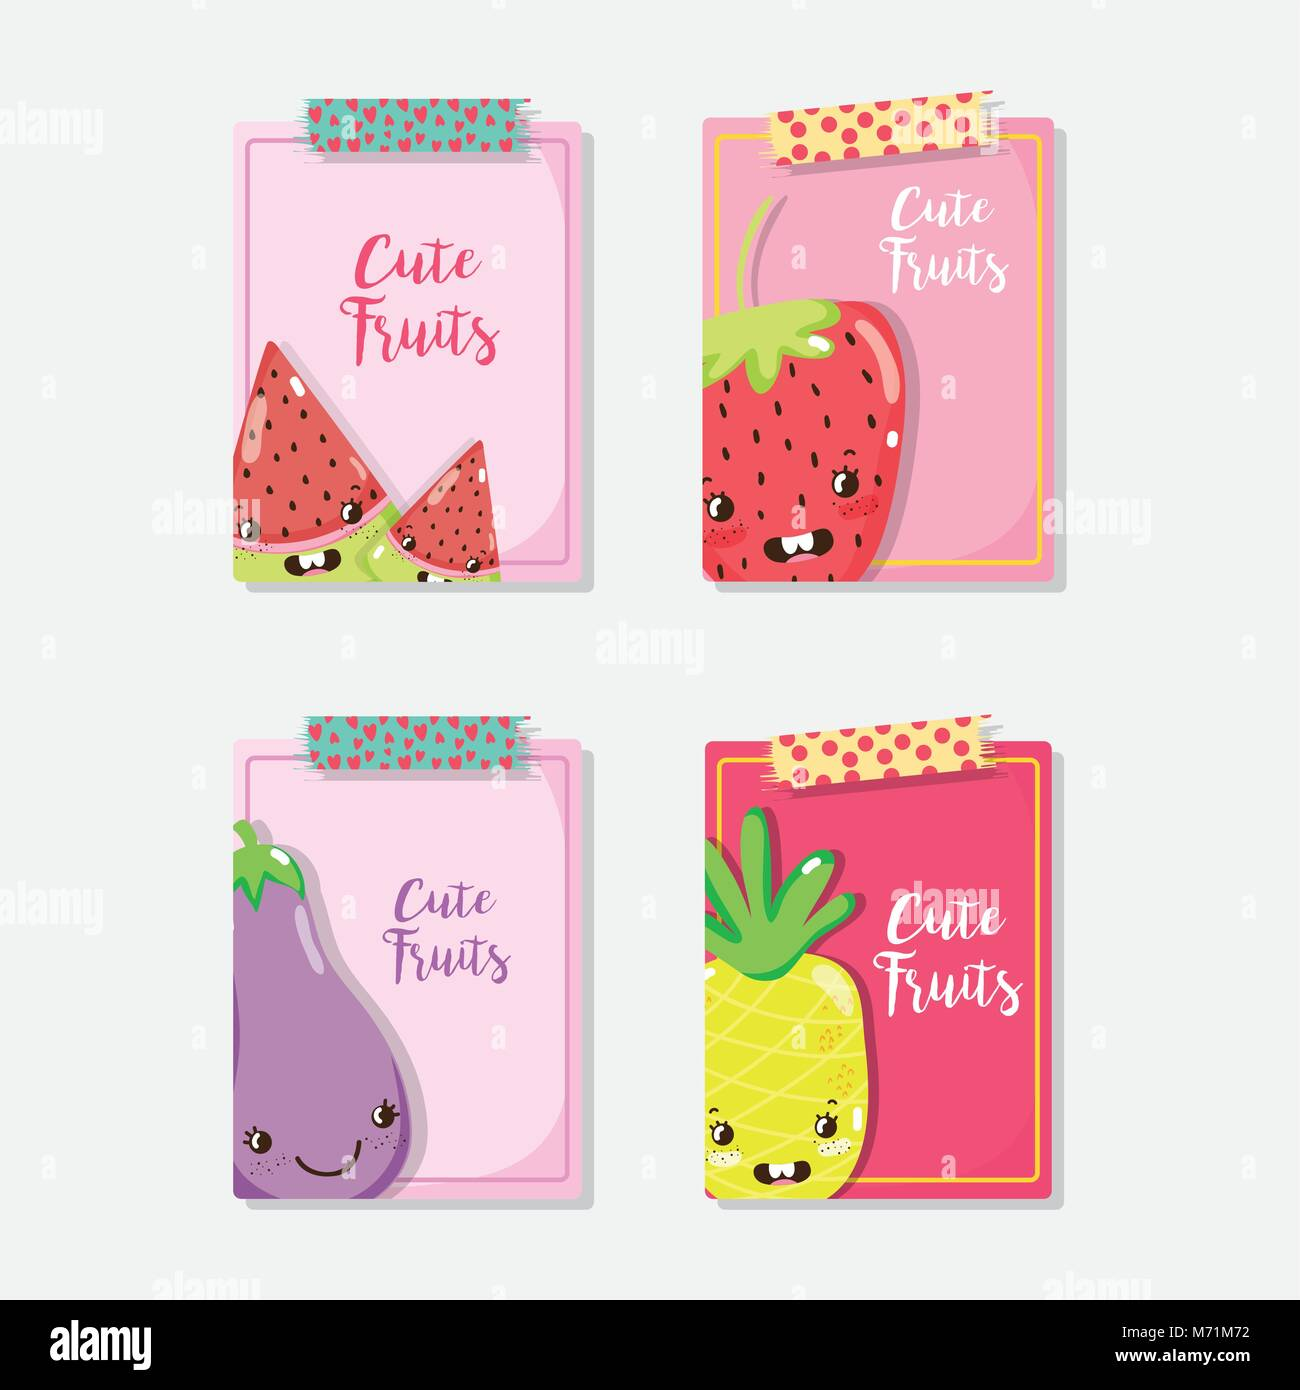 Cue fruits cards cartoons vector illustration graphic design - Stock Image